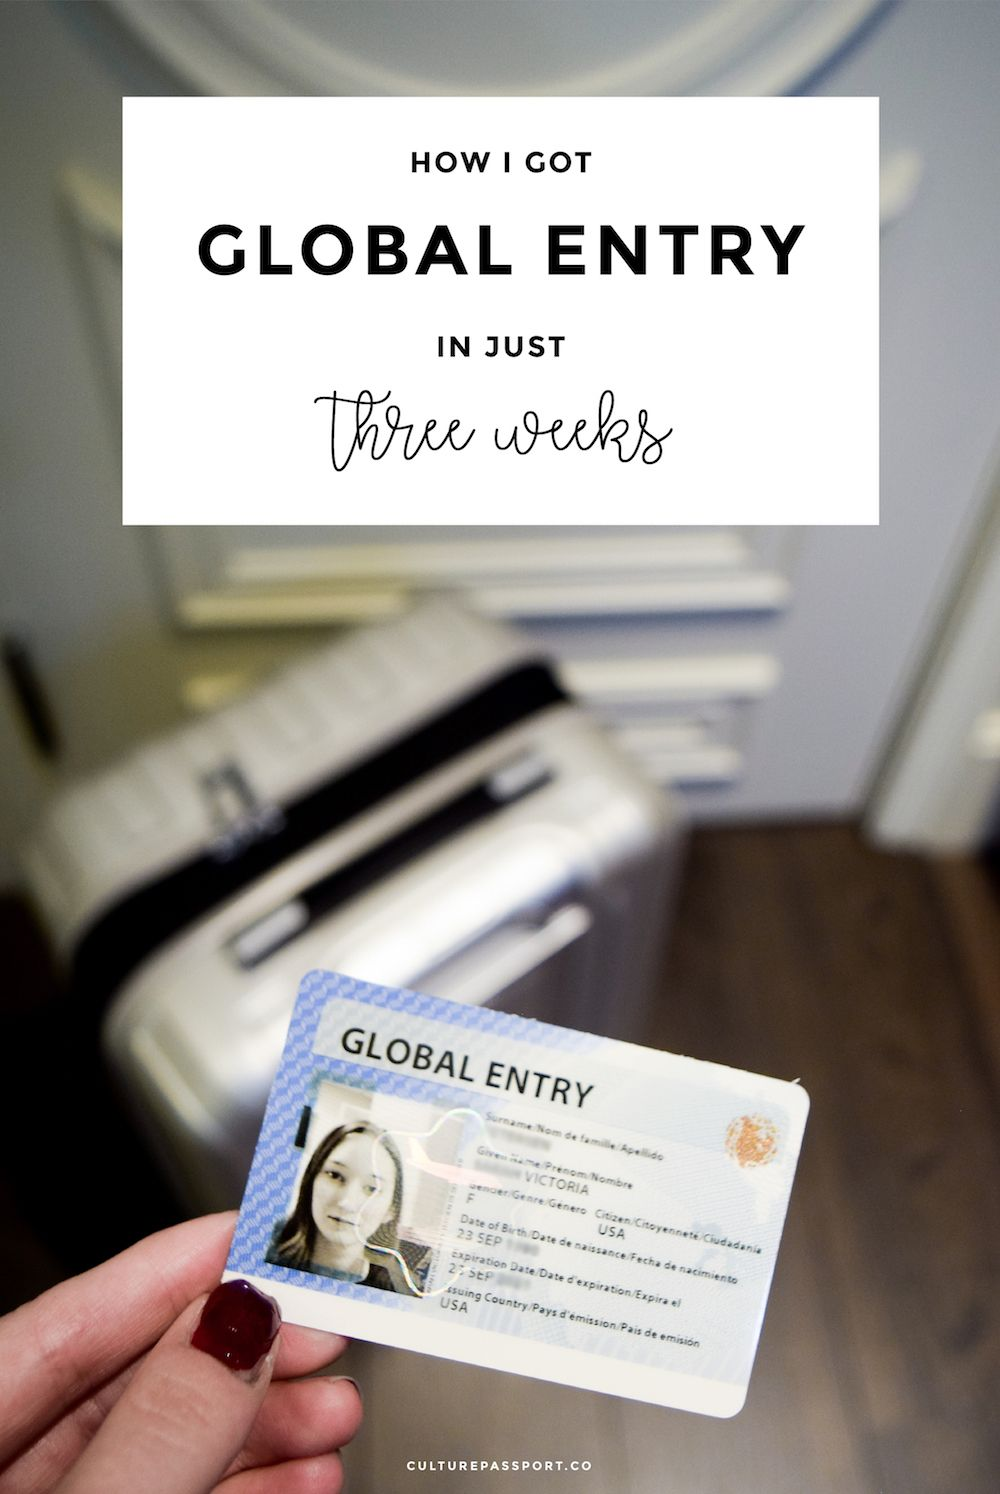 Get global entry quickly, get global entry fast, get global entry in a few weeks, Global Entry Application